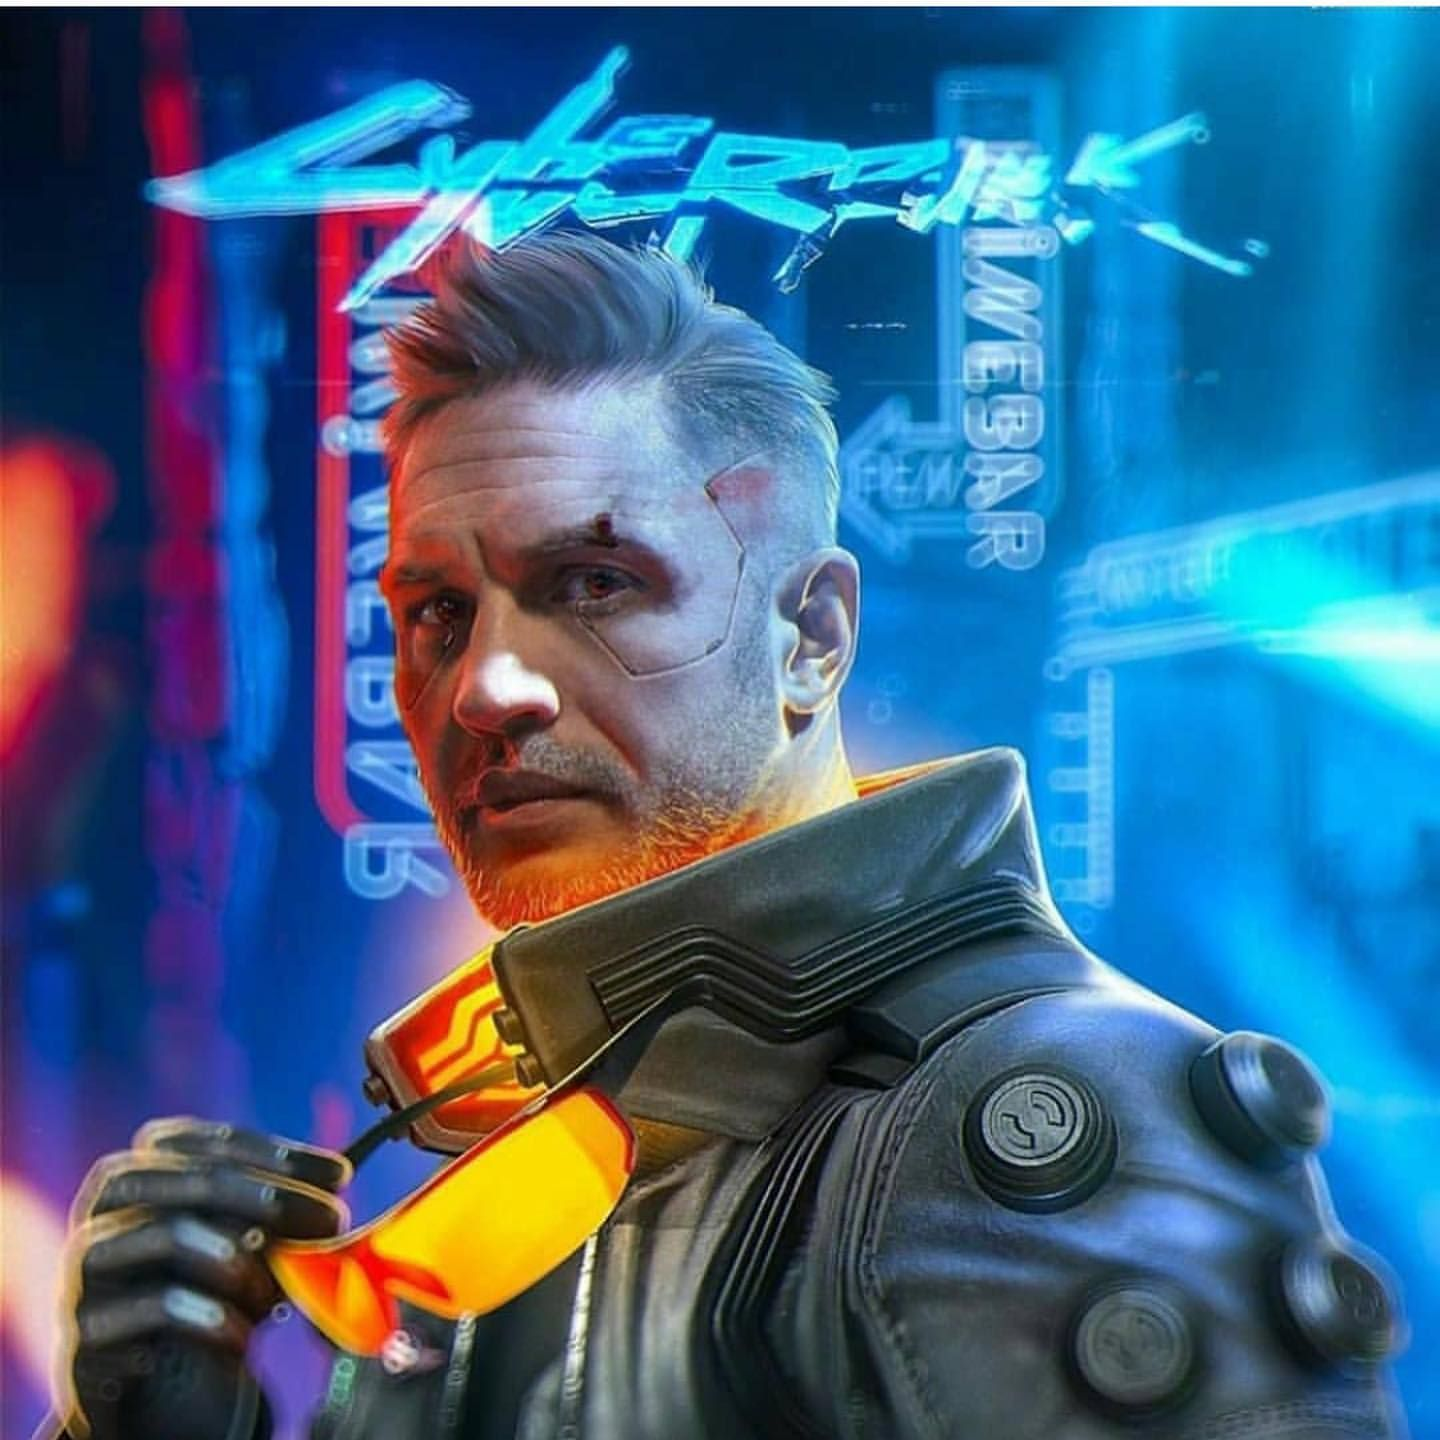 Cyberpunk 2077 looks awesome!Wish we could see more